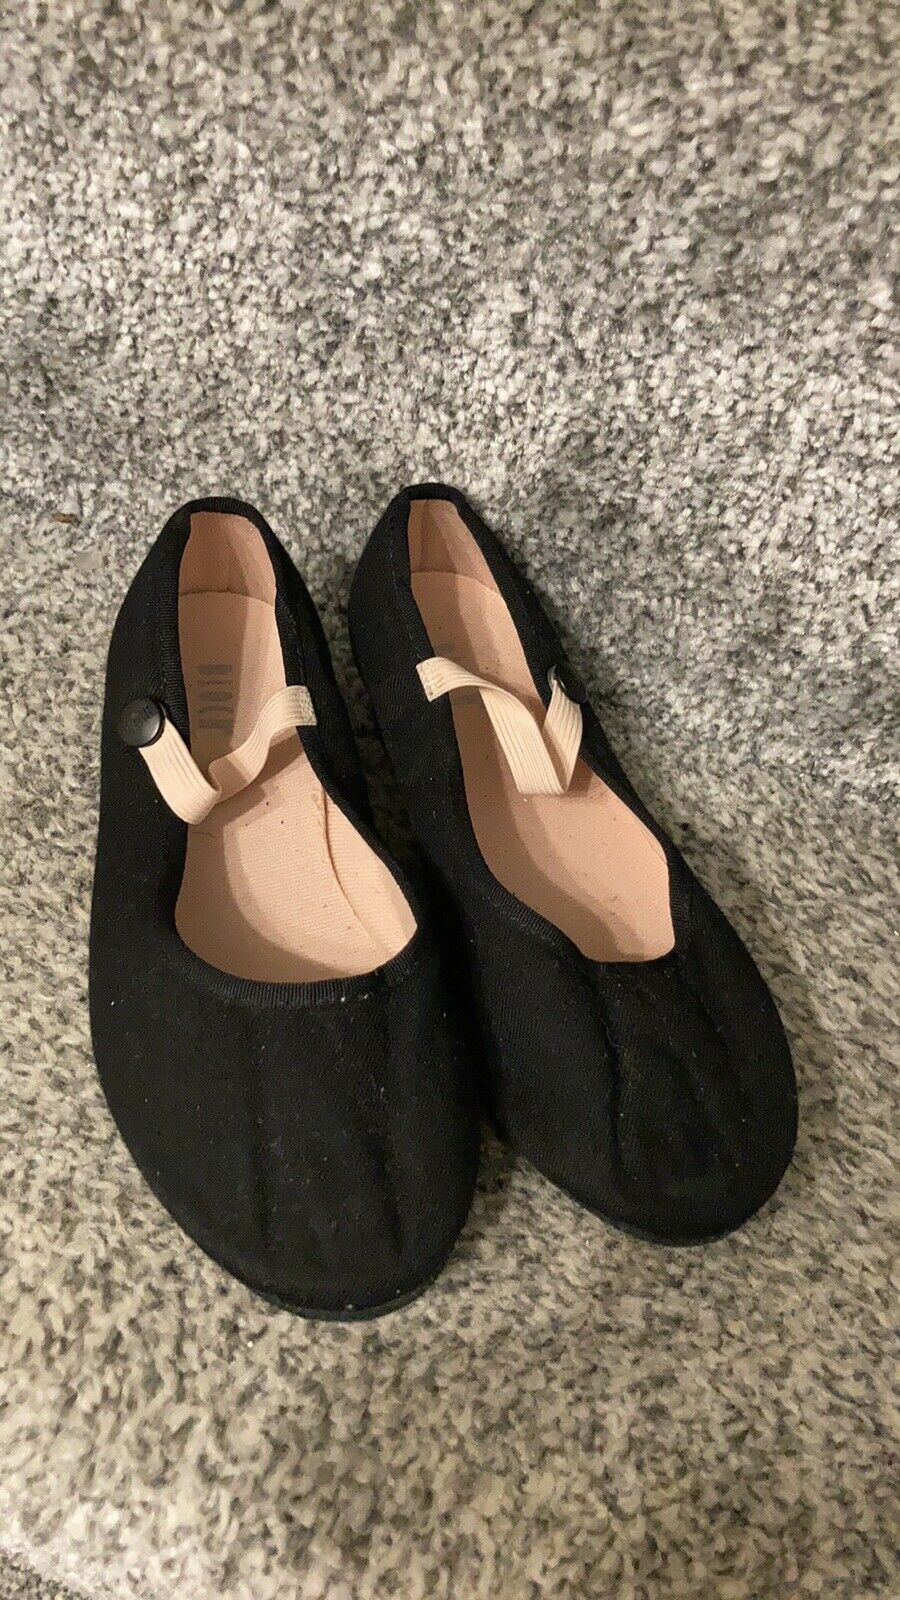 BLOCH GIRLS LOW HEEL CHARACTER BALLET SYLLABUS SHOES CHILD SIZE 10